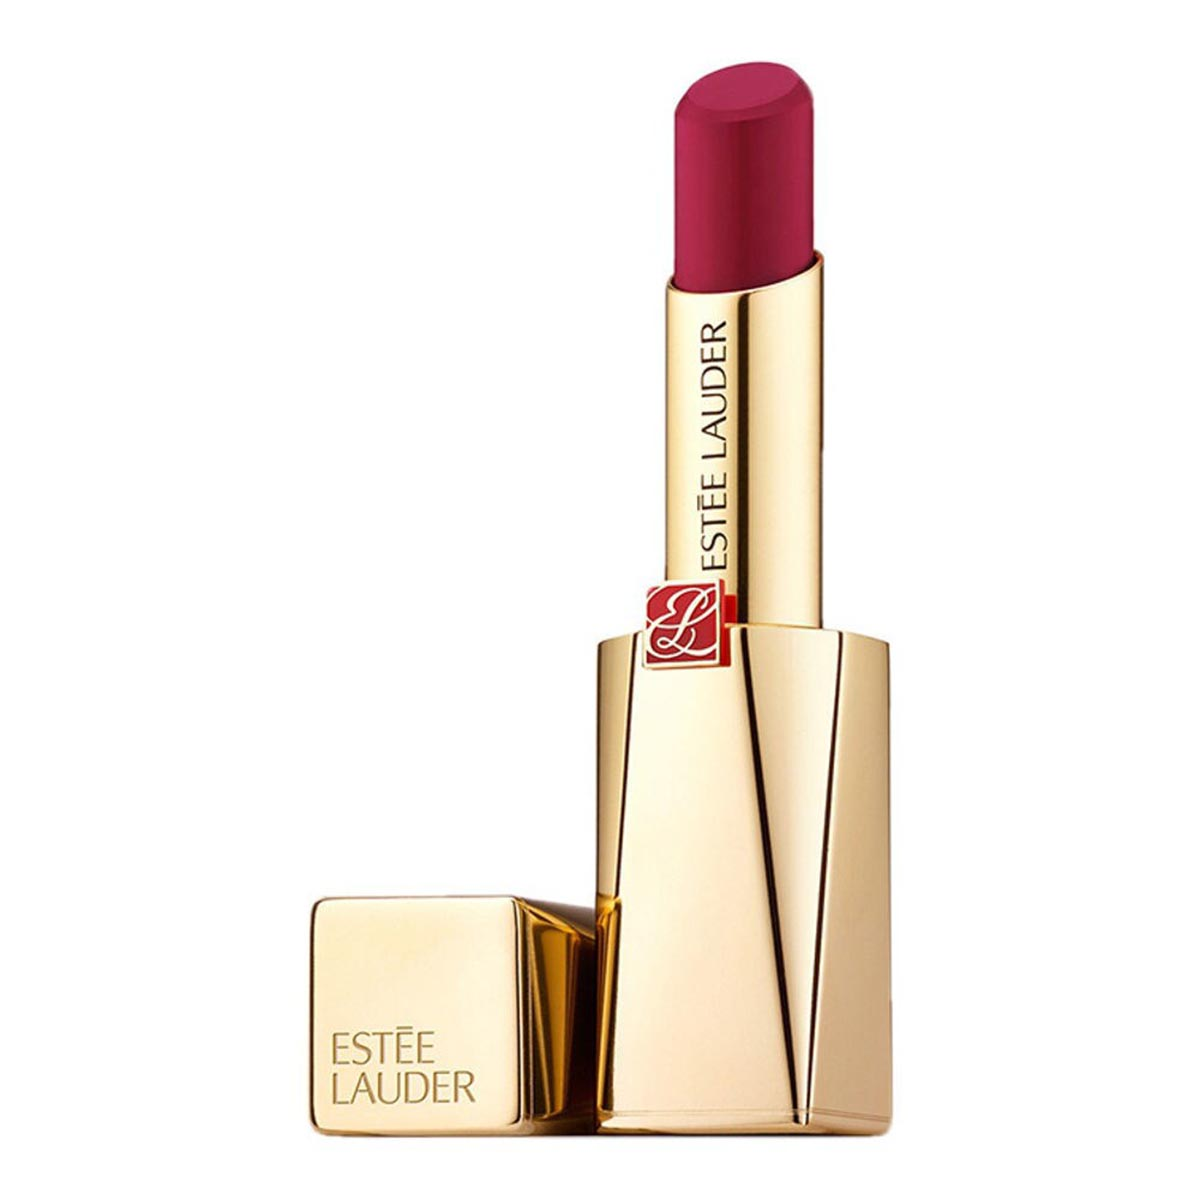 Estee lauder pure color desire rouge lipstick 207 warning venice